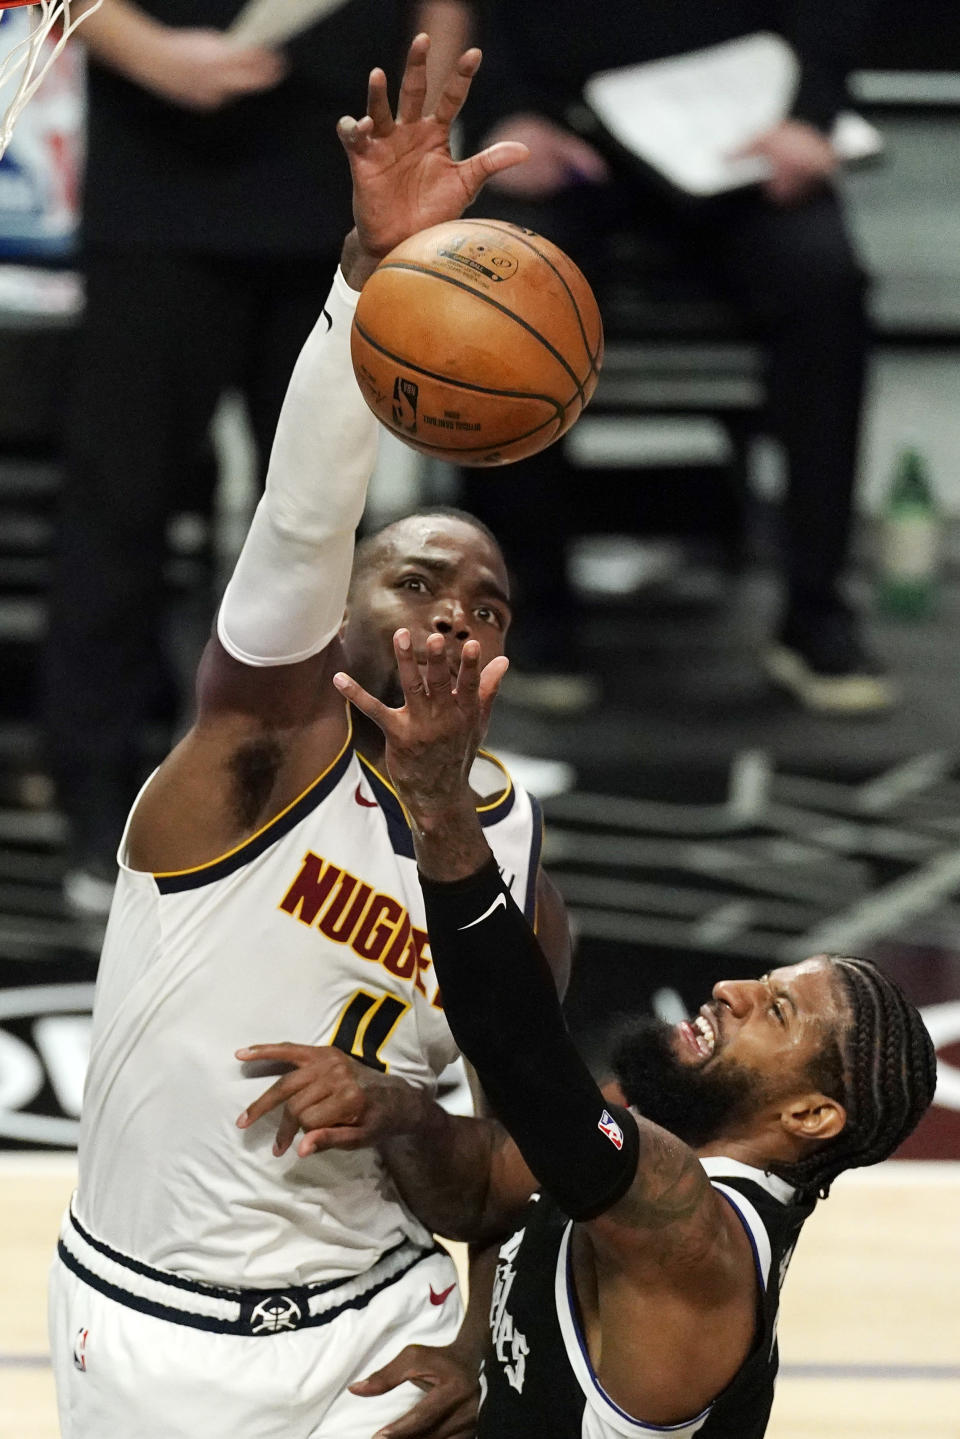 Los Angeles Clippers guard Paul George, right, shoots as Denver Nuggets forward Paul Millsap defends during the first half of an NBA basketball game Saturday, May 1, 2021, in Los Angeles. (AP Photo/Mark J. Terrill)